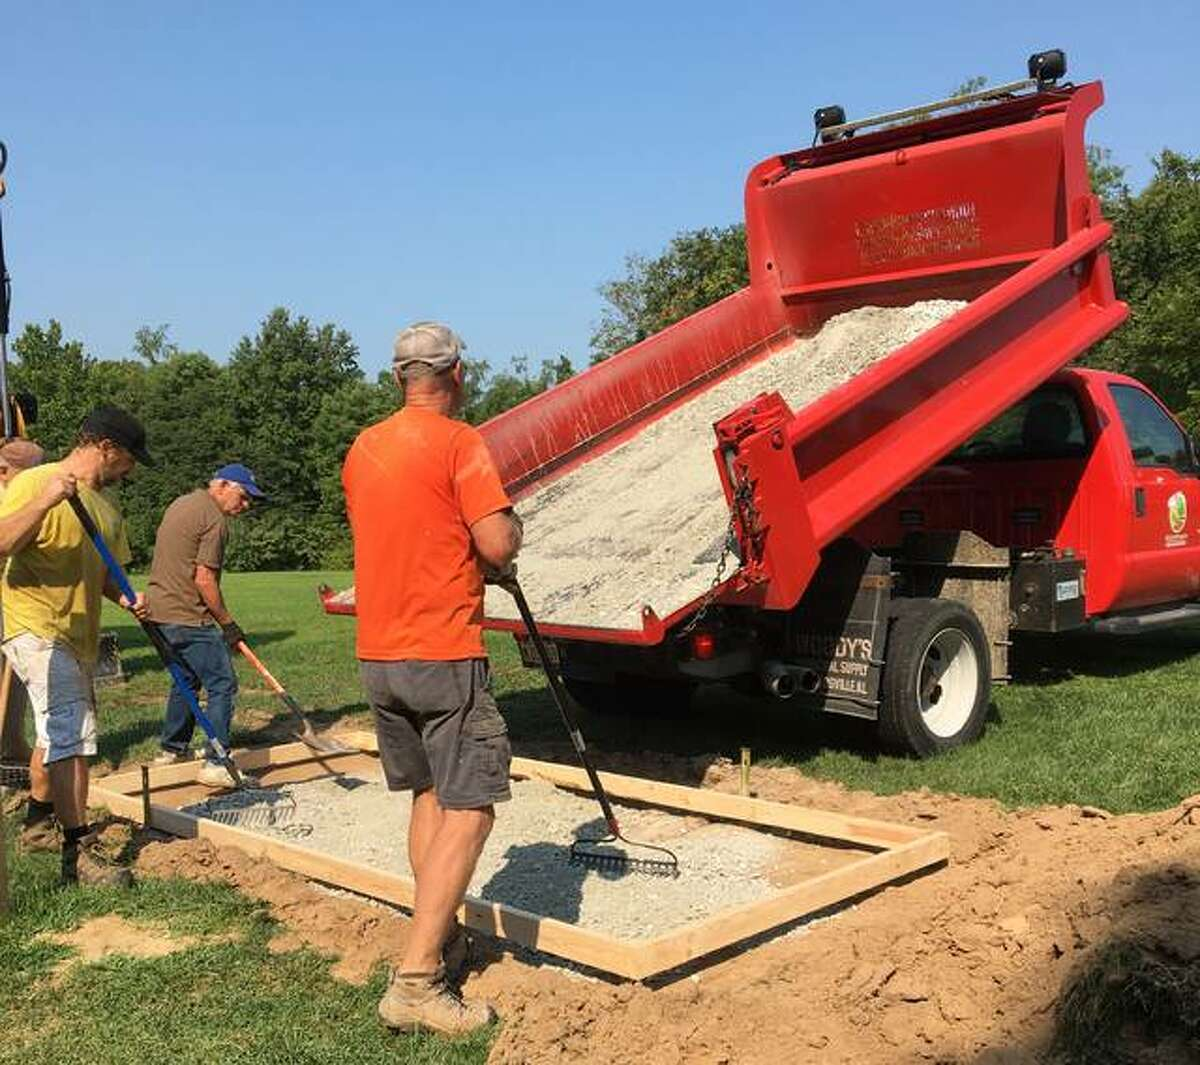 Alton-Godrey Rotary Club members Dennis Wilson, Jim White and Tracy Shaffer prepare a disc golf tee box at La Vista Park in Godfrey in August. The project has won the village the Governor's Hometown Award in Economic Opportunities.